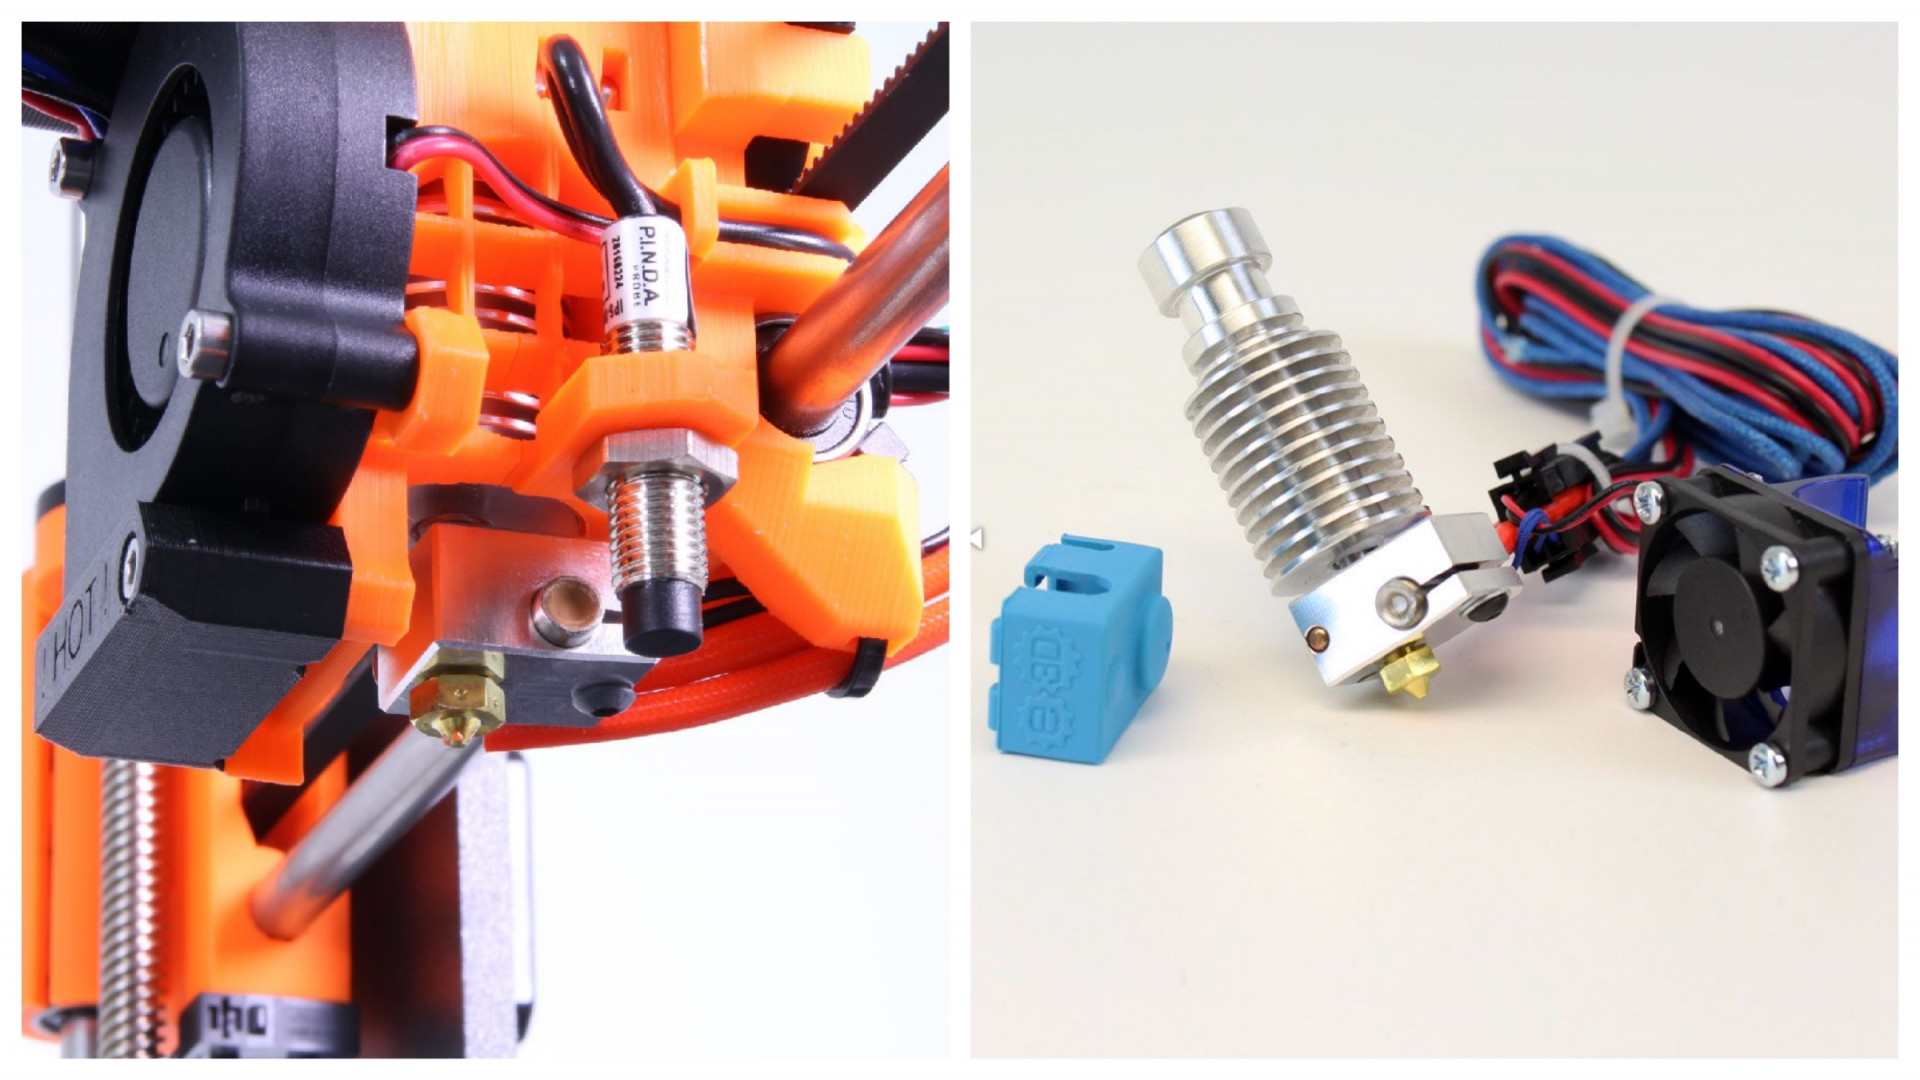 4 Best 3d Printer Extruder Hotends Of 2018 All3dp Star Delta Wiring Explained Wallpapers